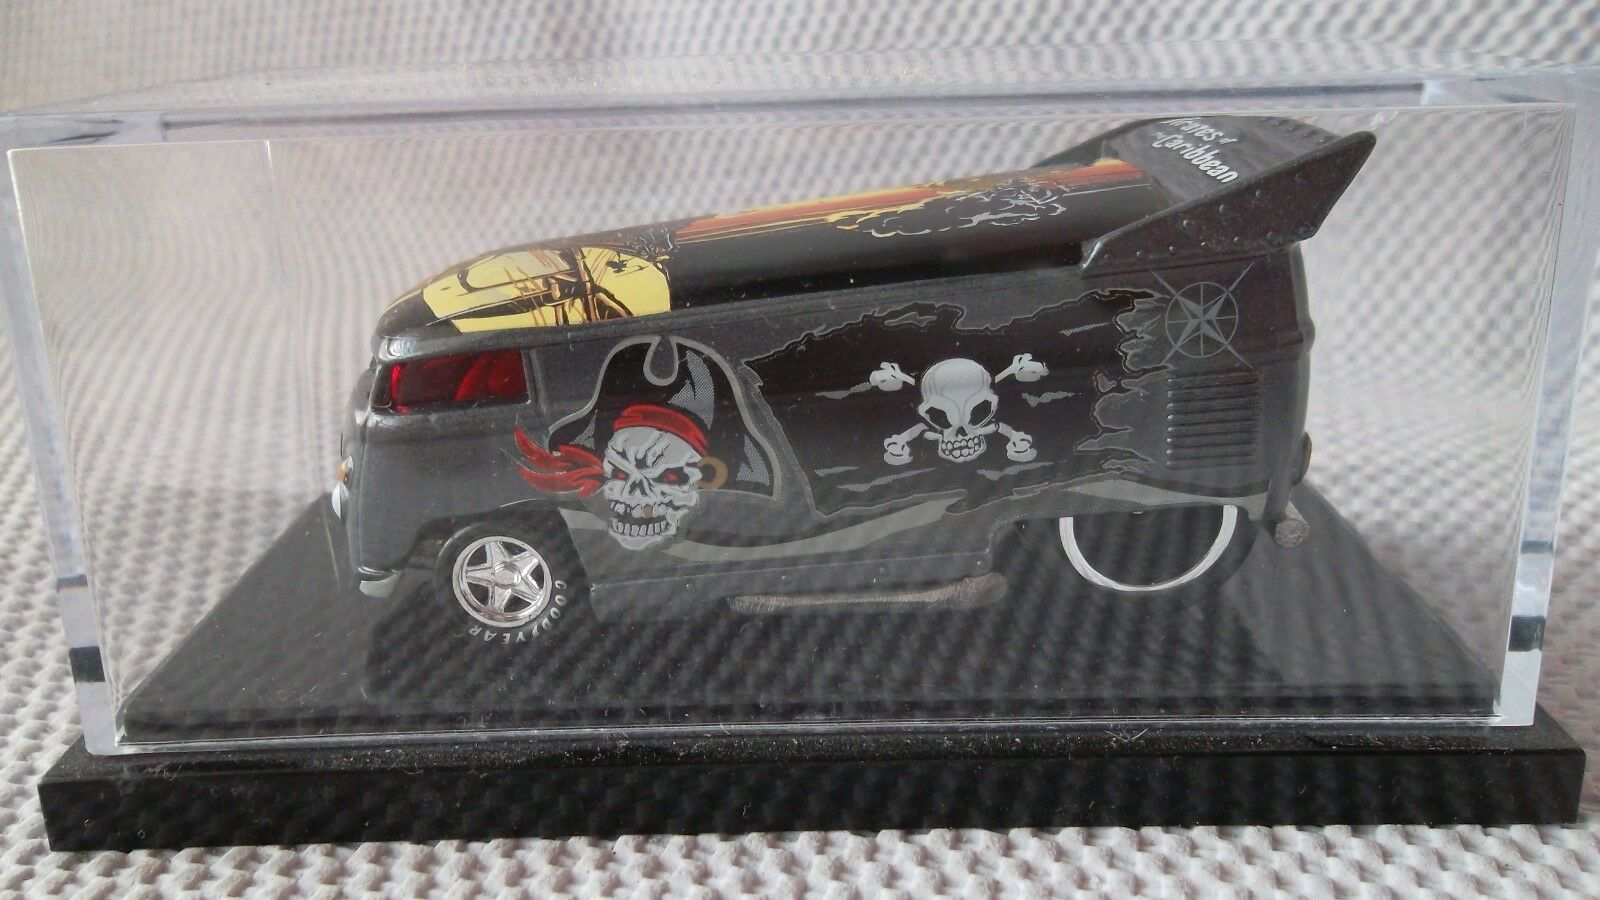 VOLKSWAGEN VW DRAG BUS Liberty Promotions Pirates of the Caribbean avec étui 1 1300